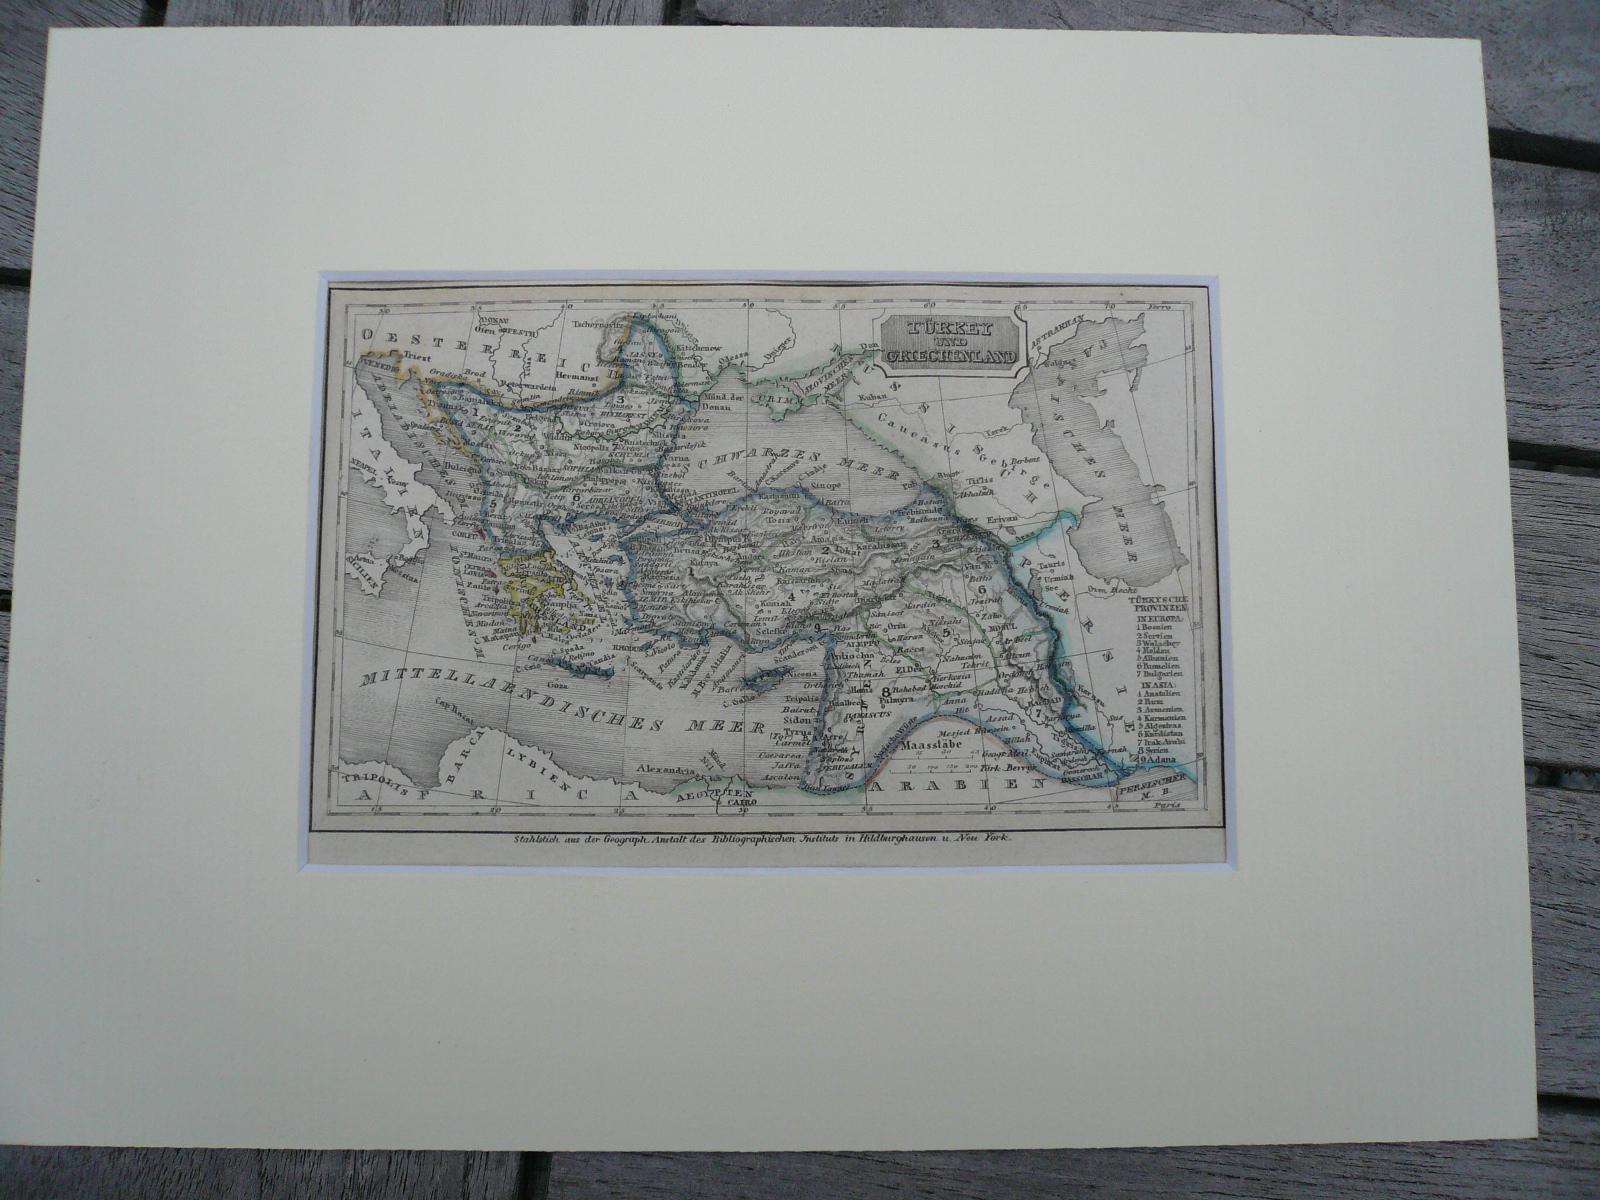 Turkey/near East, anno 1850, steelengraving